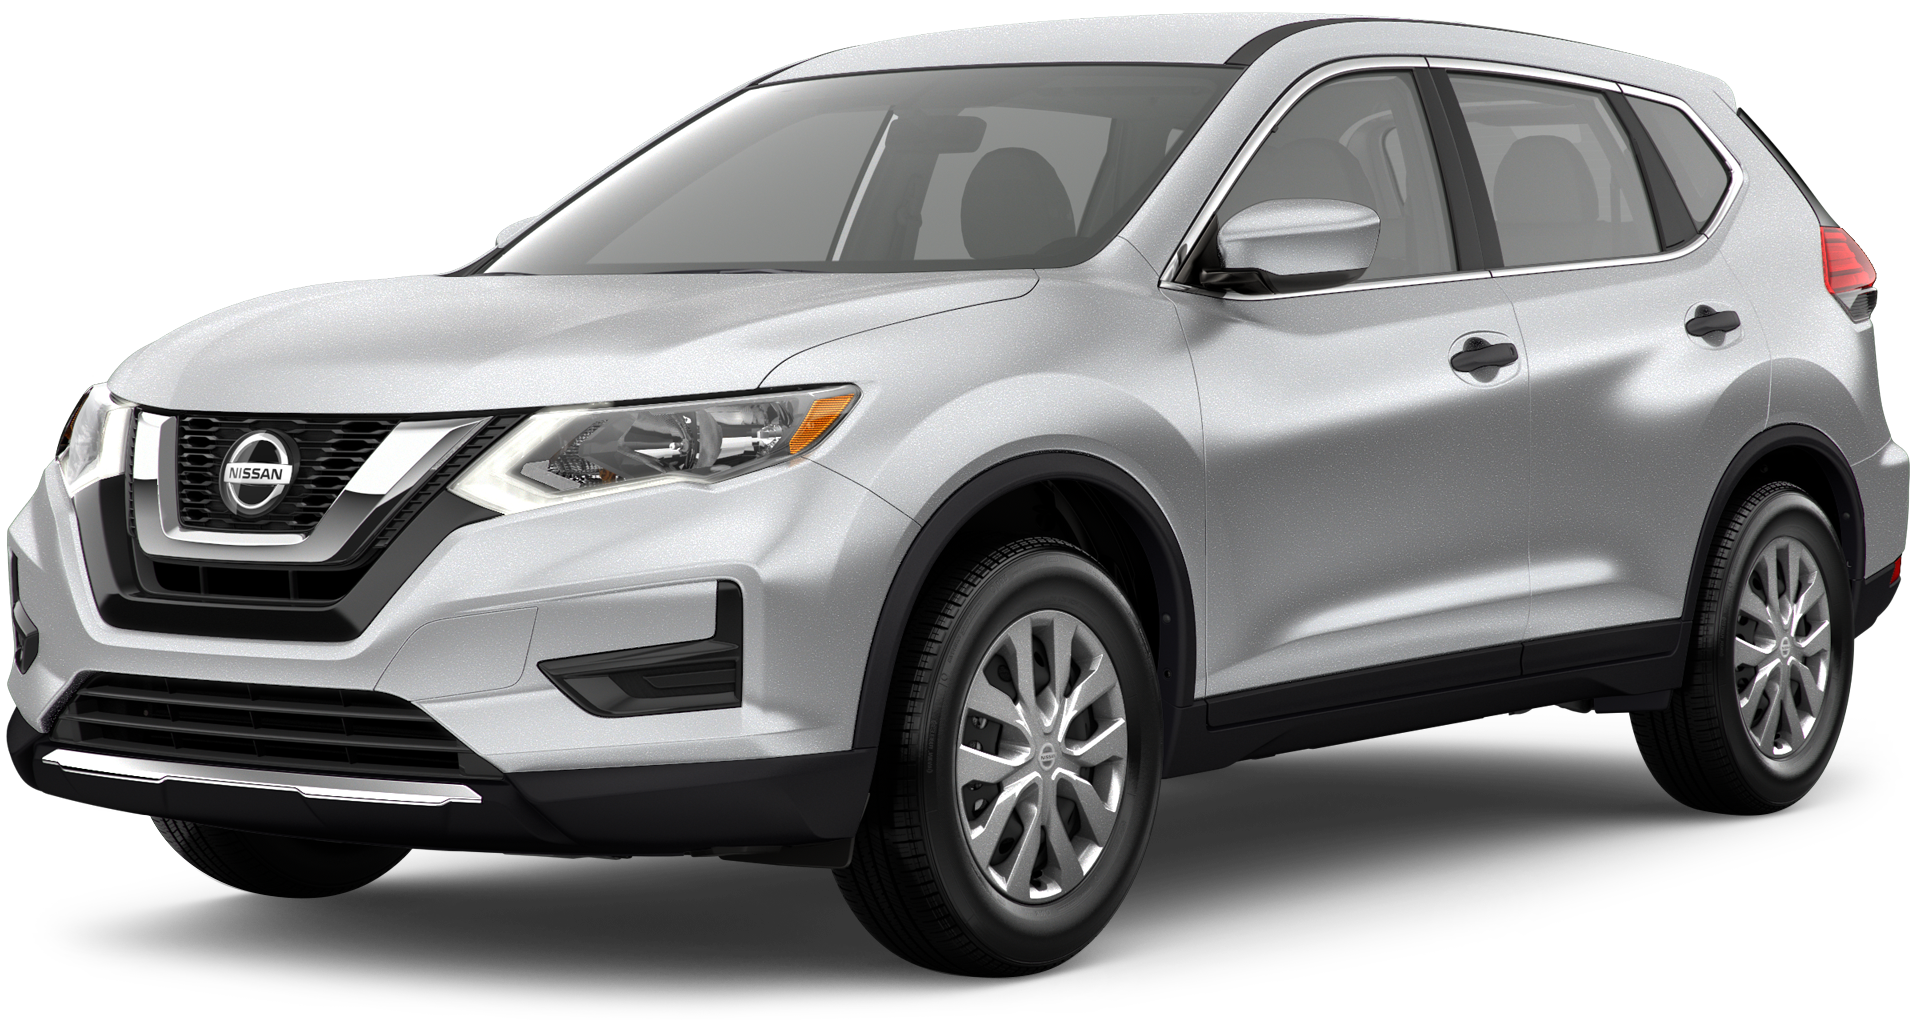 2019 nissan rogue for sale in white marsh md sheehy nissan of white marsh. Black Bedroom Furniture Sets. Home Design Ideas